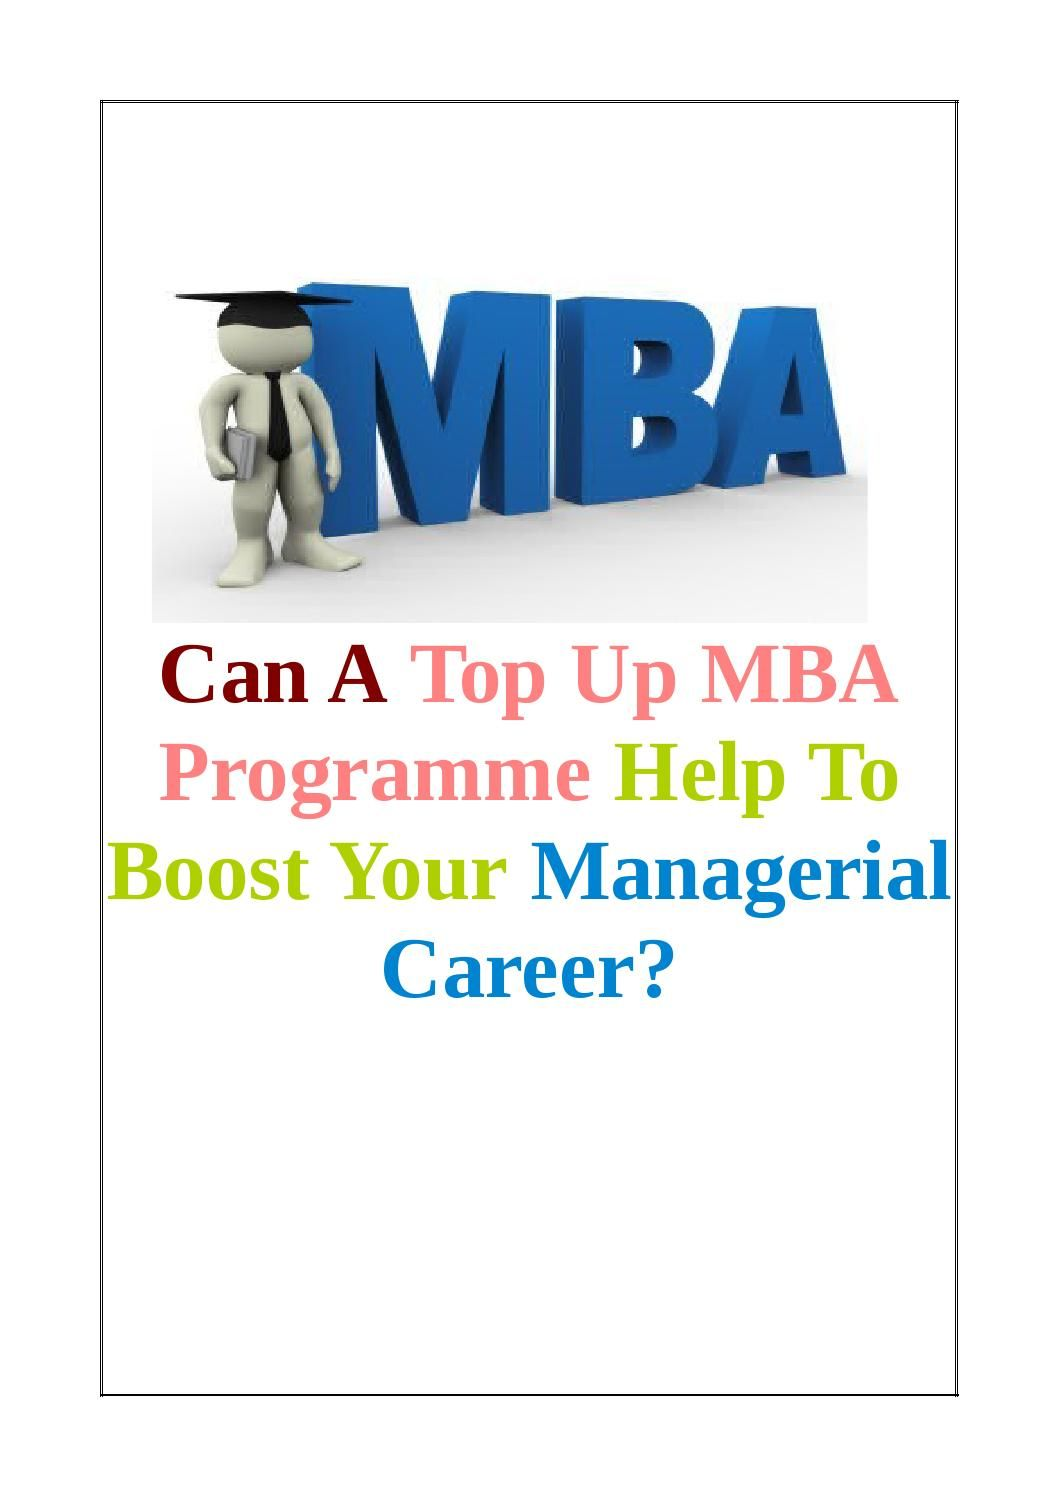 Can A Top Up Mba Programme Help To Boost Your Managerial Career